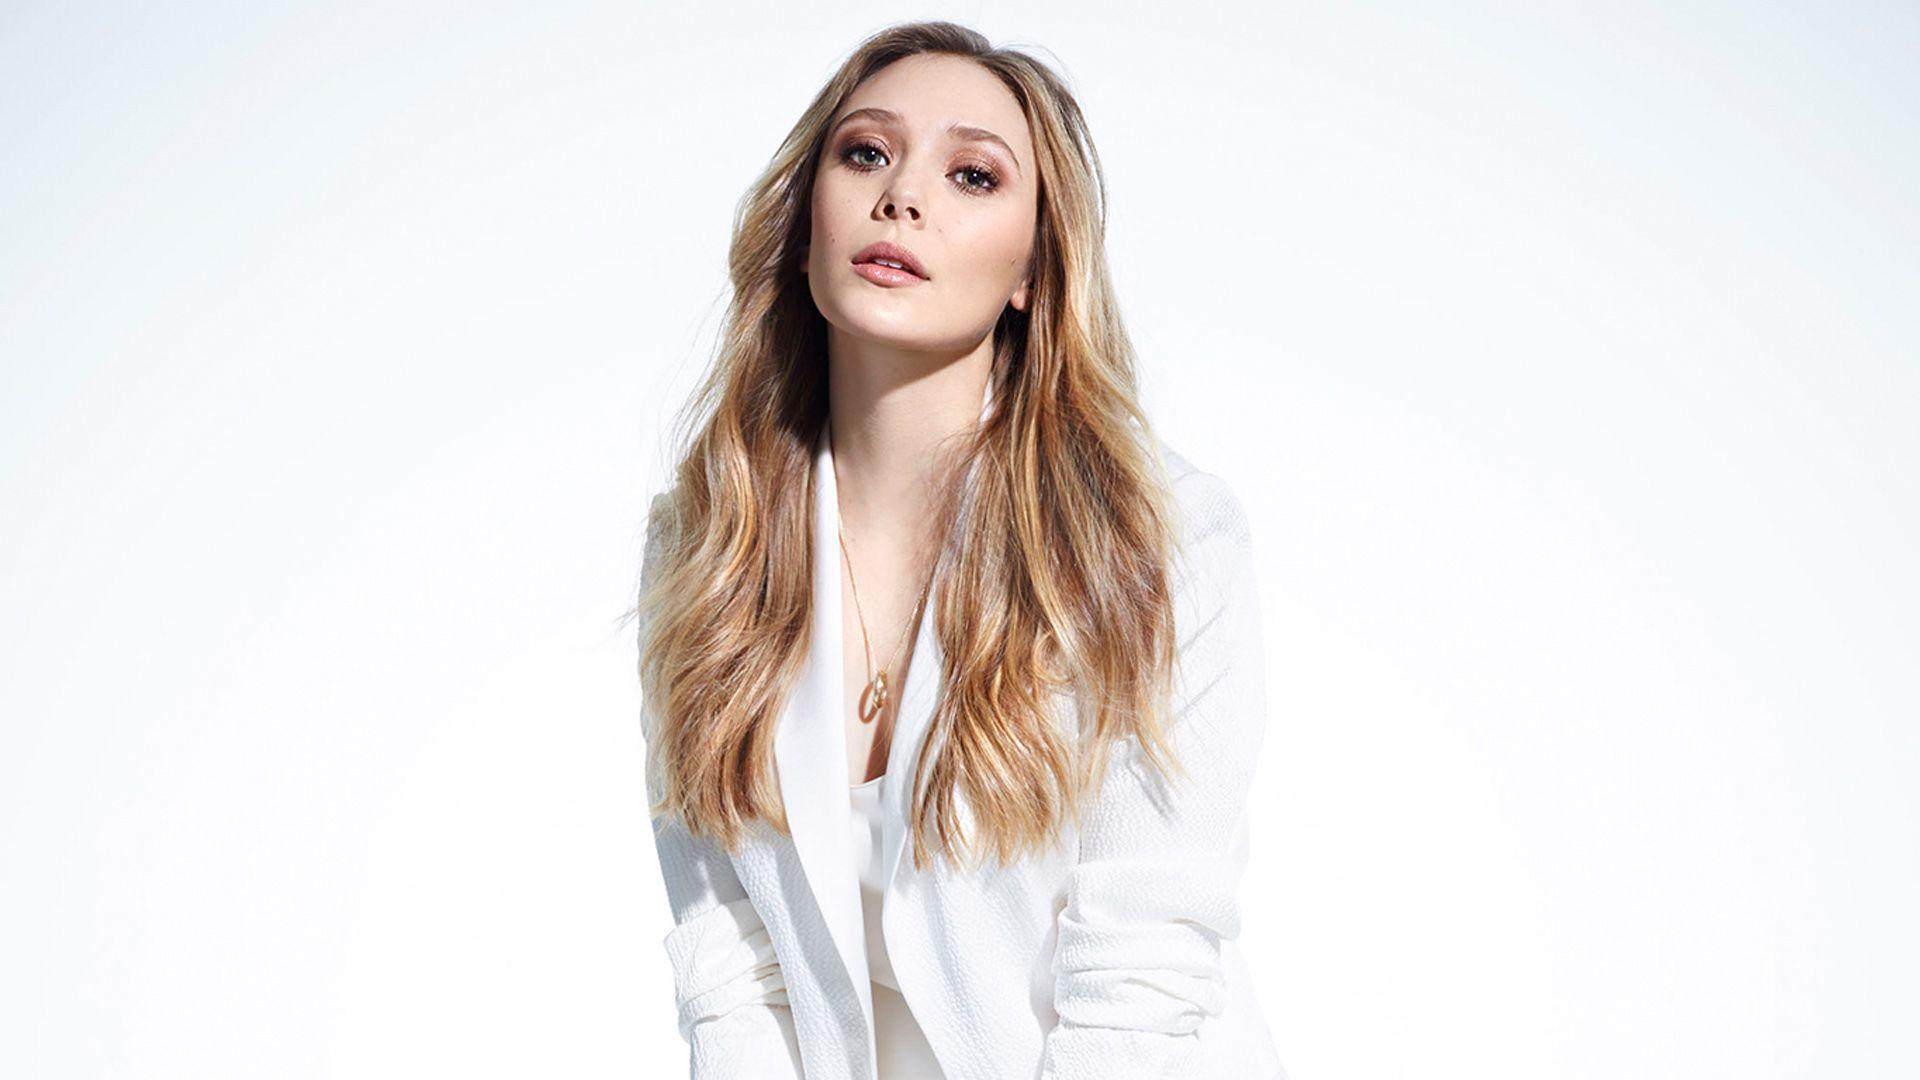 Elizabeth Olsen Wallpapers 1920x1080